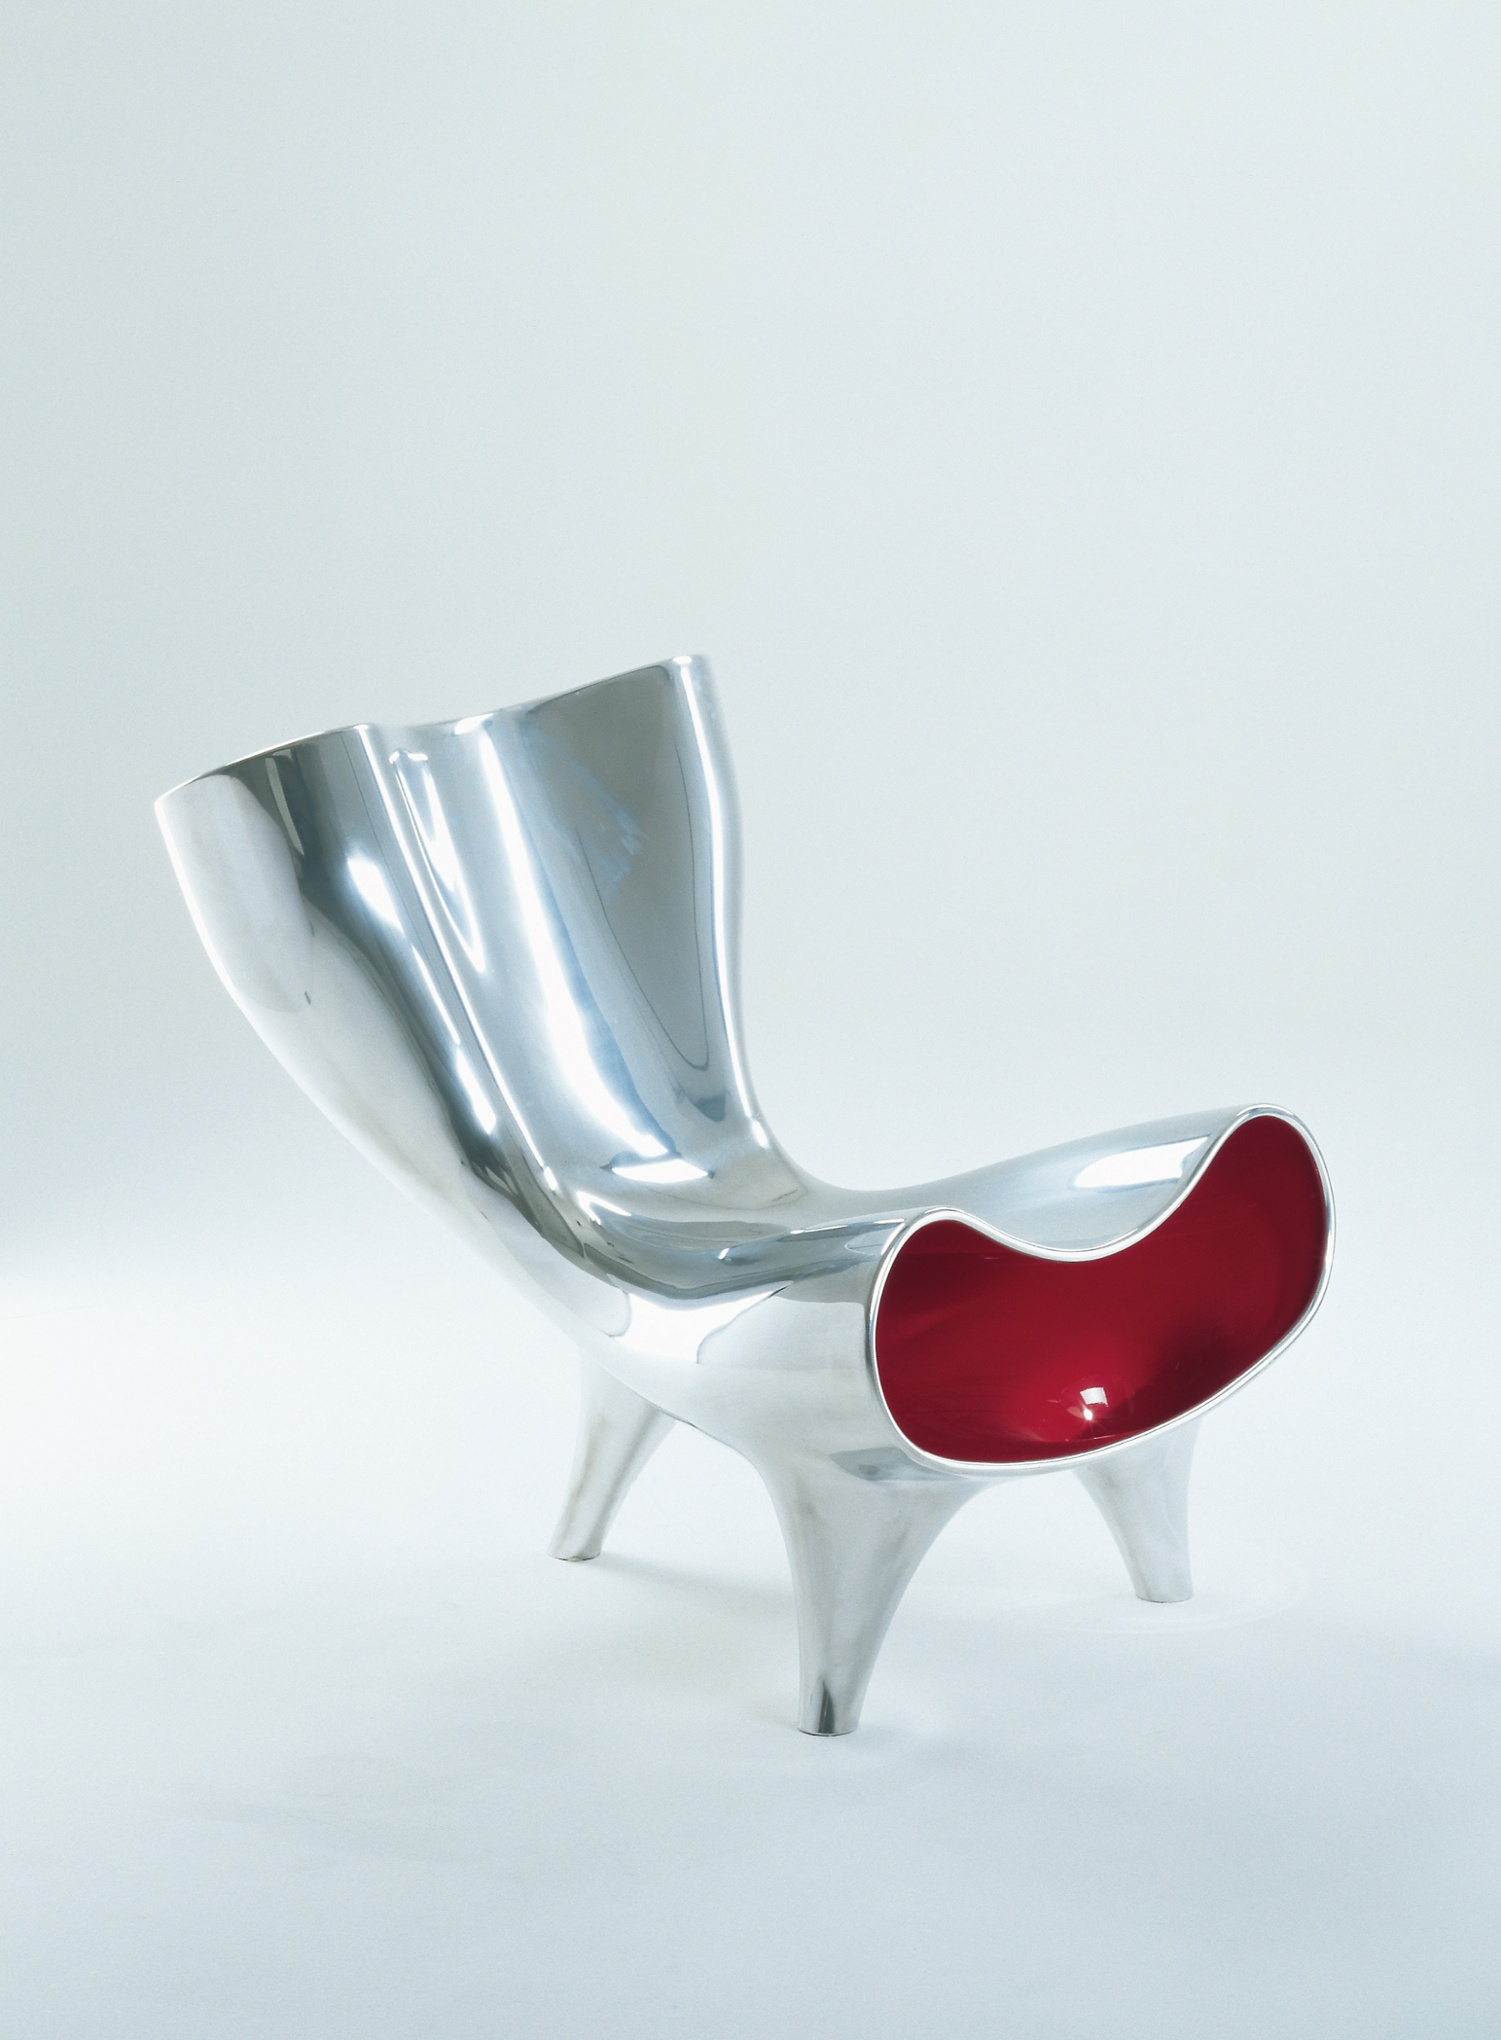 Marc Newson S Best Designs In Pictures Art And Design